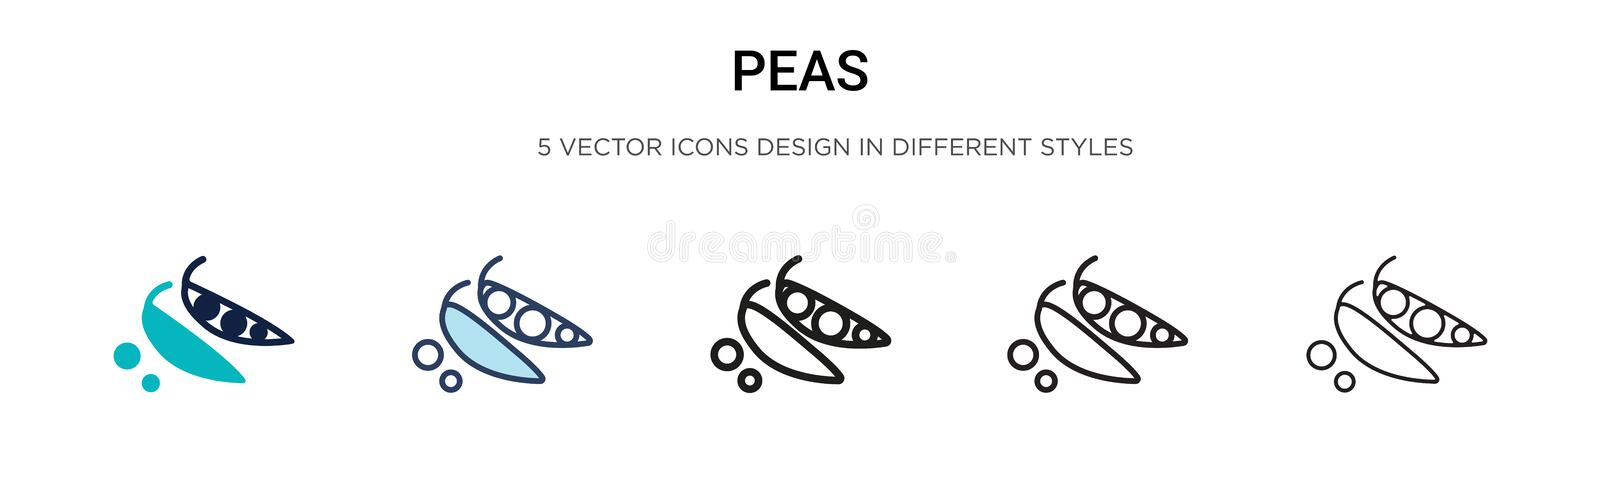 Instant Download - Two Peas in a Pod Clipart for Scrapbooking, Card Making,  Personal and Commercial | Can dogs eat, Clip art, Toxic foods for dogs